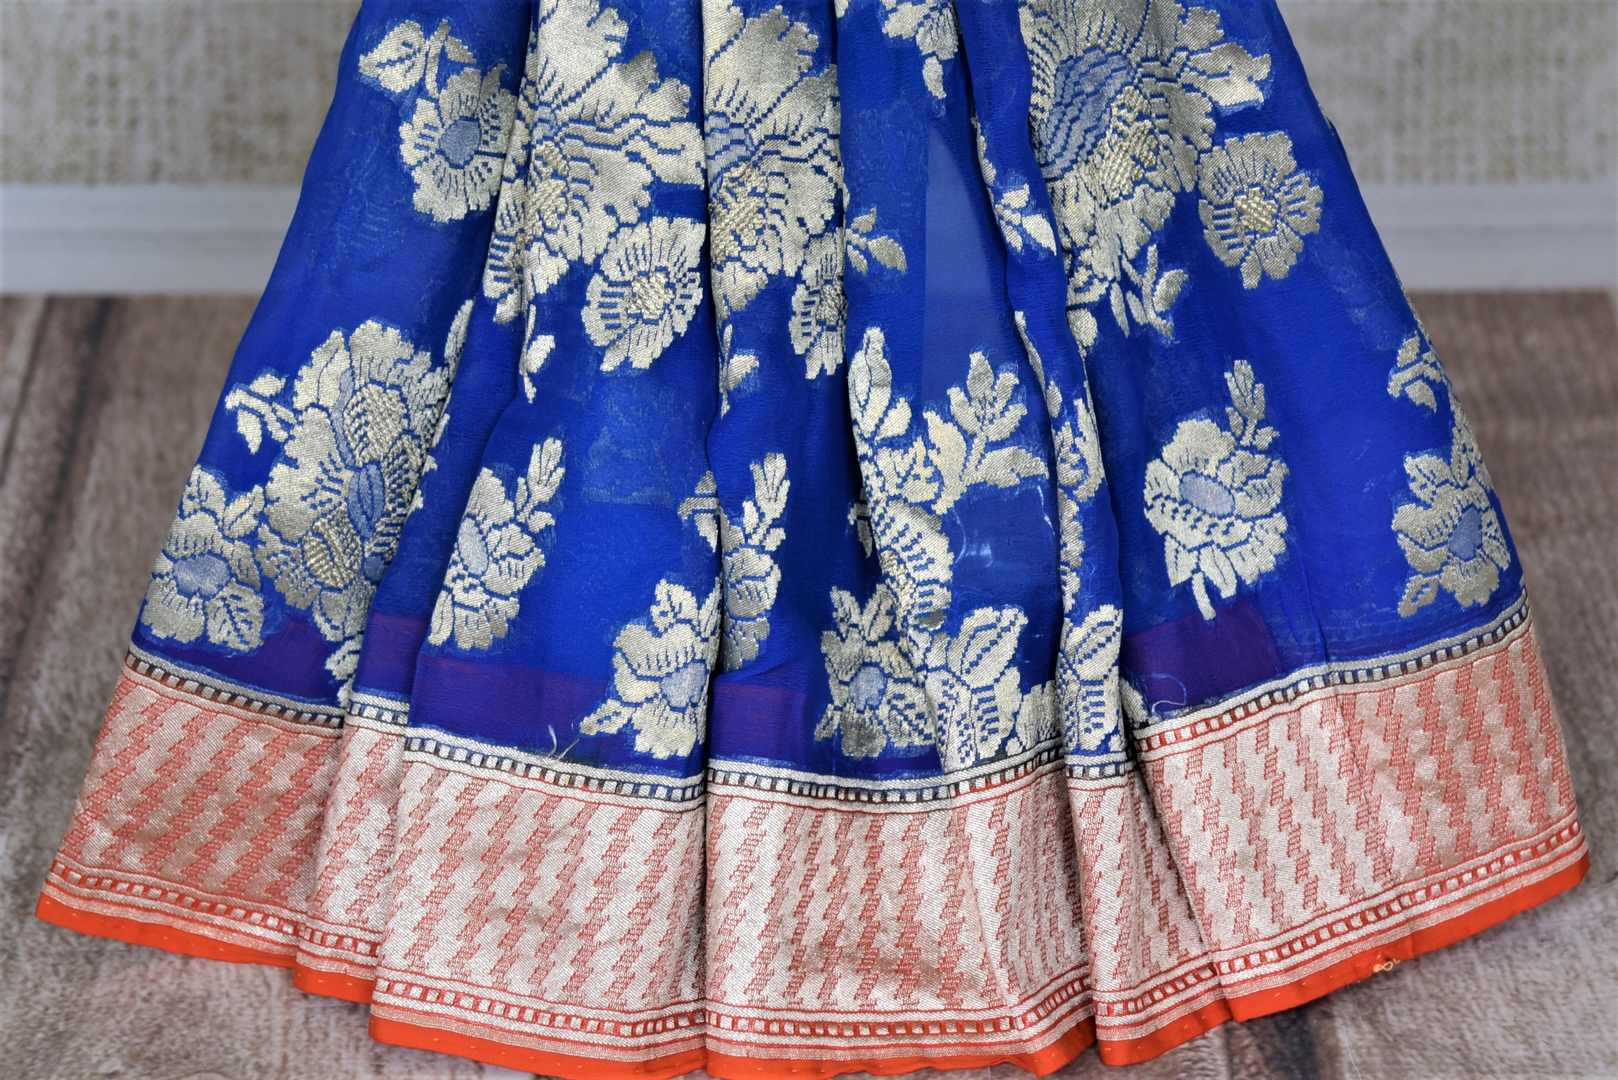 Buy beautiful indigo blue silver floral zari work georgette Banarasi saree online in USA. Go for an extraordinary traditional look with splendid handwoven sarees, embroidered sarees with blouses, Banarasi saris from Pure Elegance from Indian cloth store in USA.  Shop online or visit our store now.-pleats